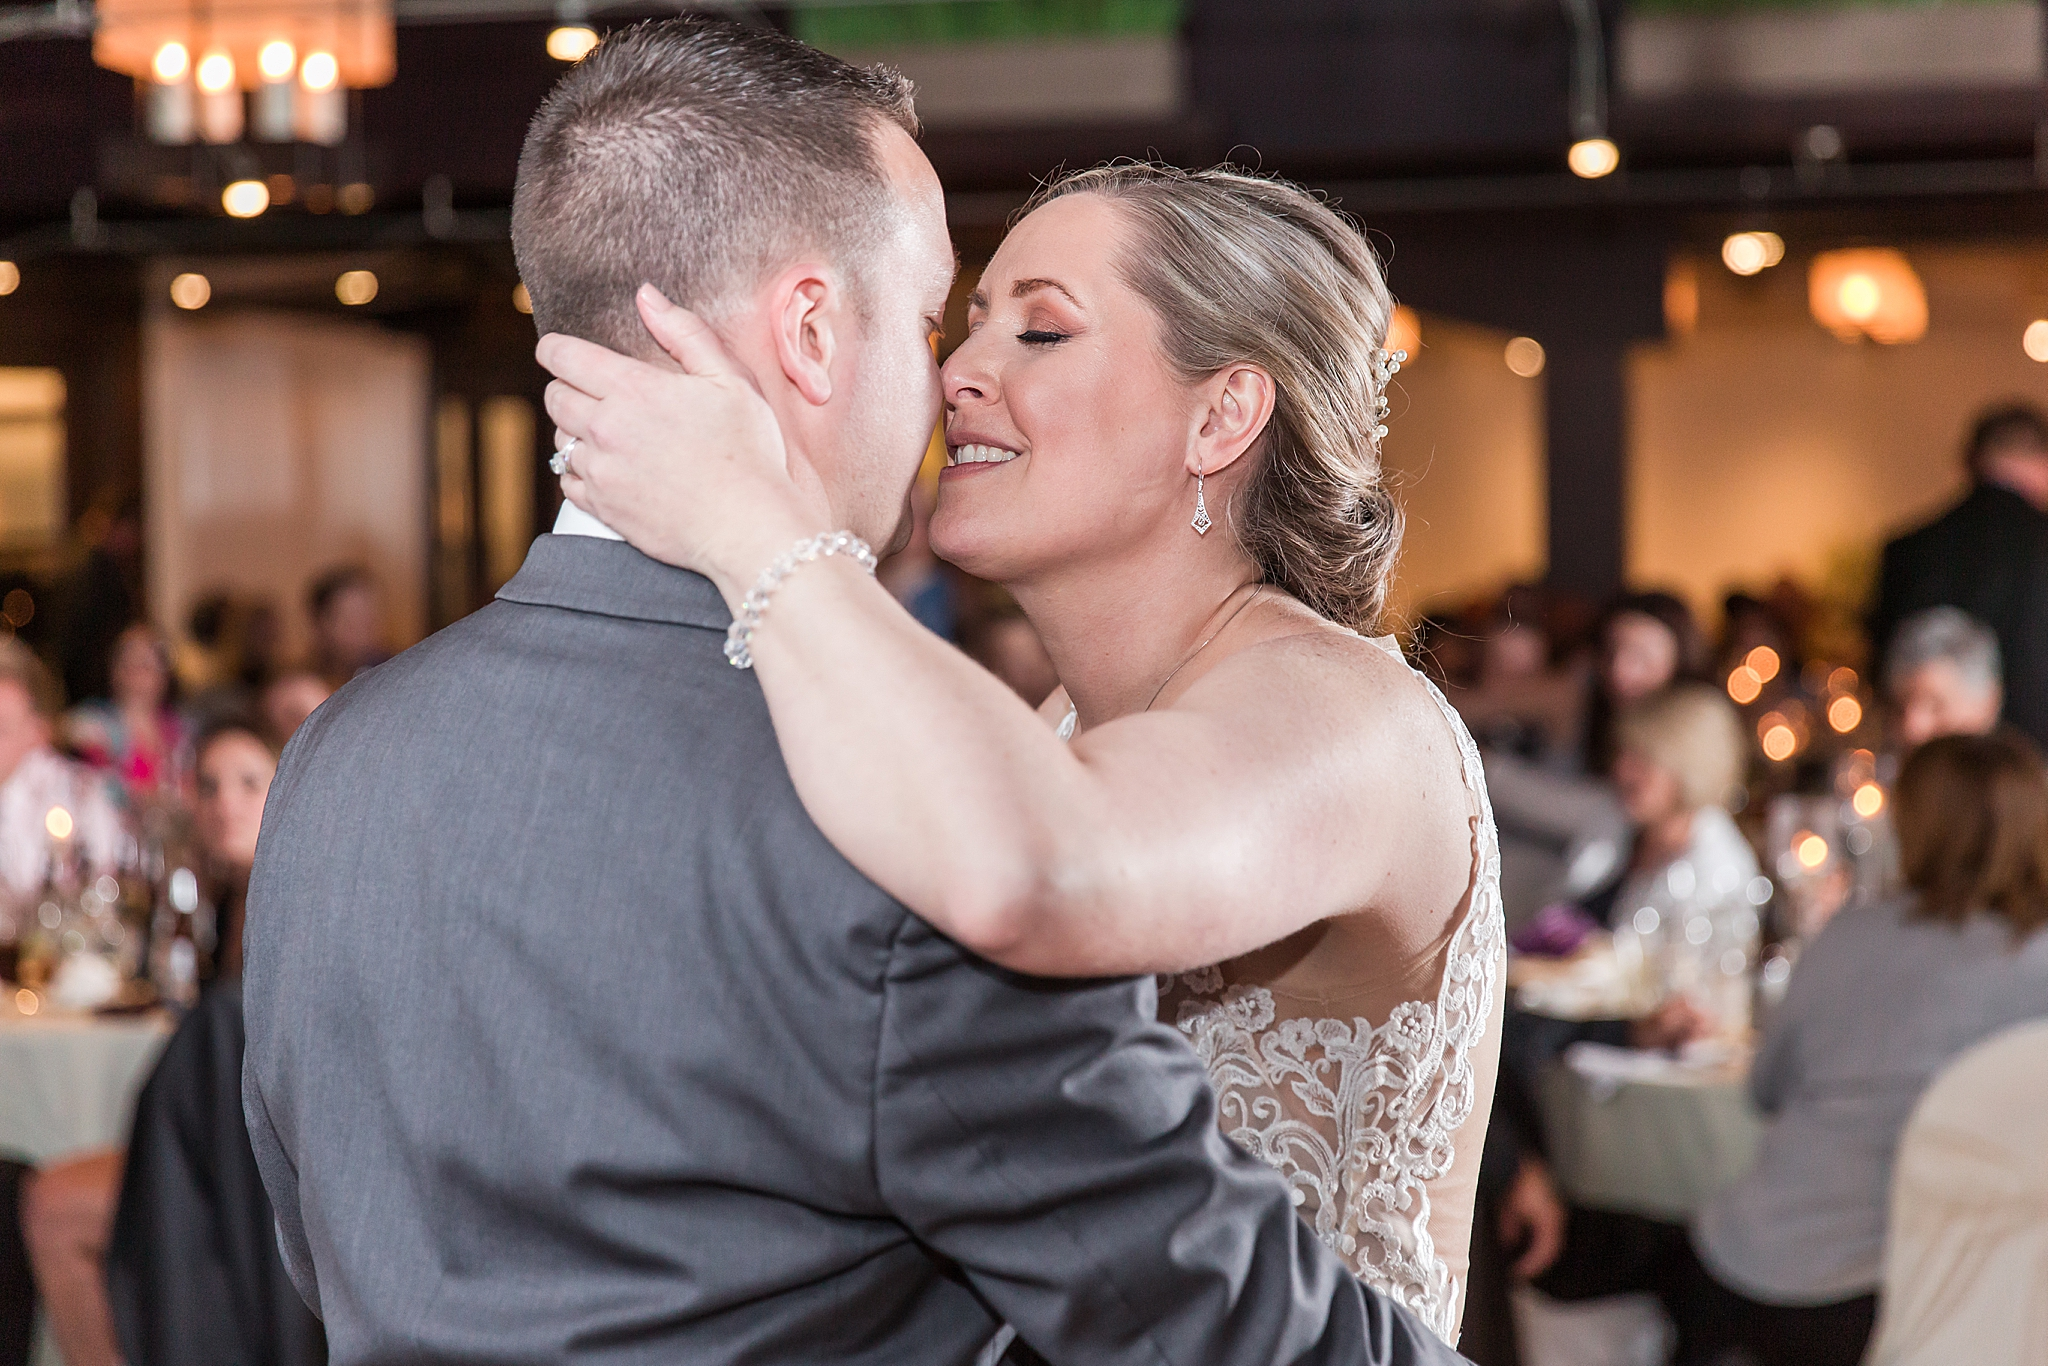 modern-romantic-wedding-photography-at-webers-in-ann-arbor-michigan-by-courtney-carolyn-photography_0079.jpg